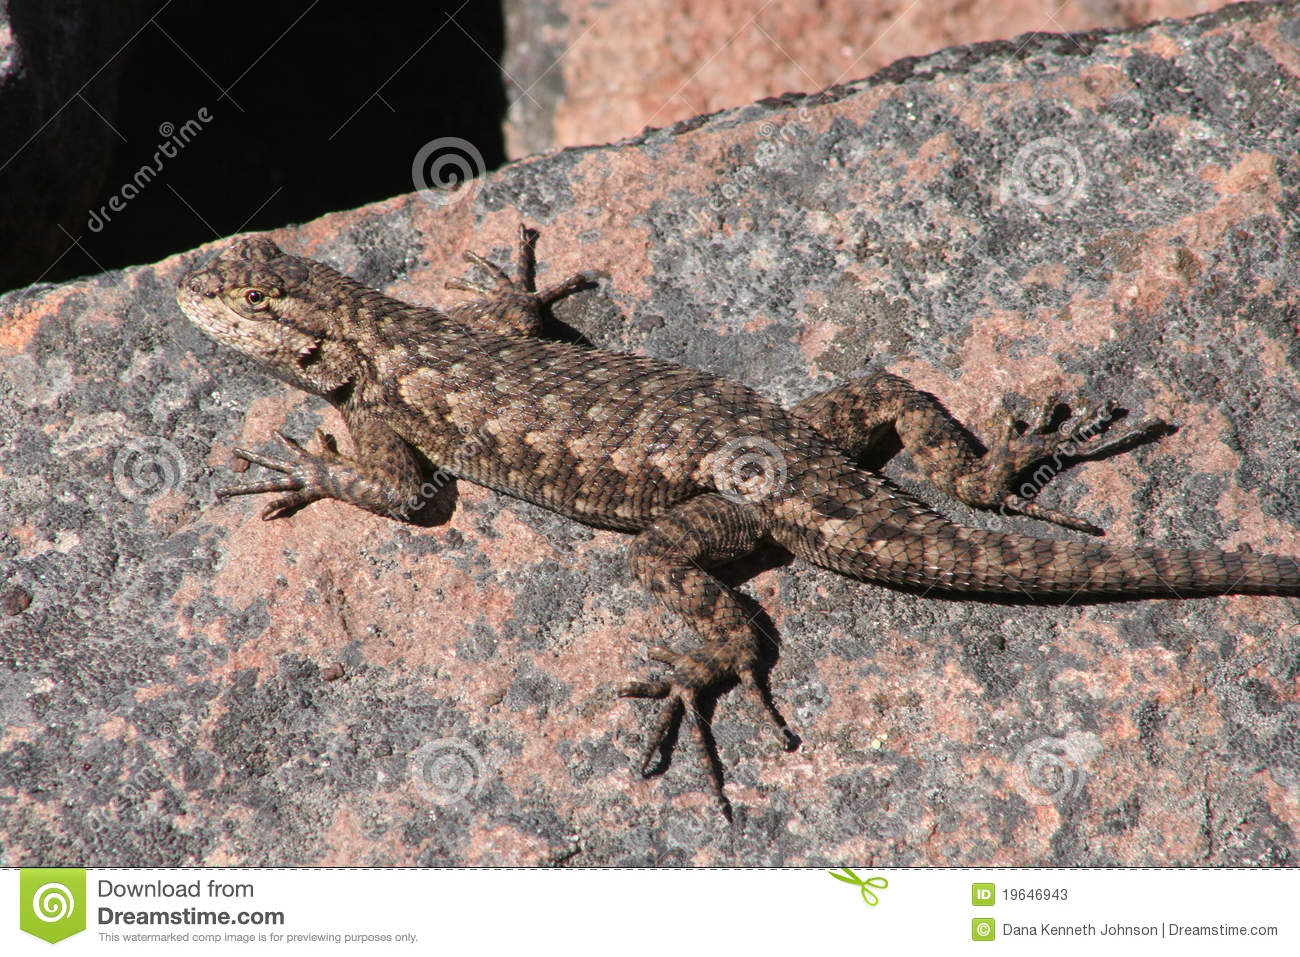 Western Fence Lizard clipart #2, Download drawings